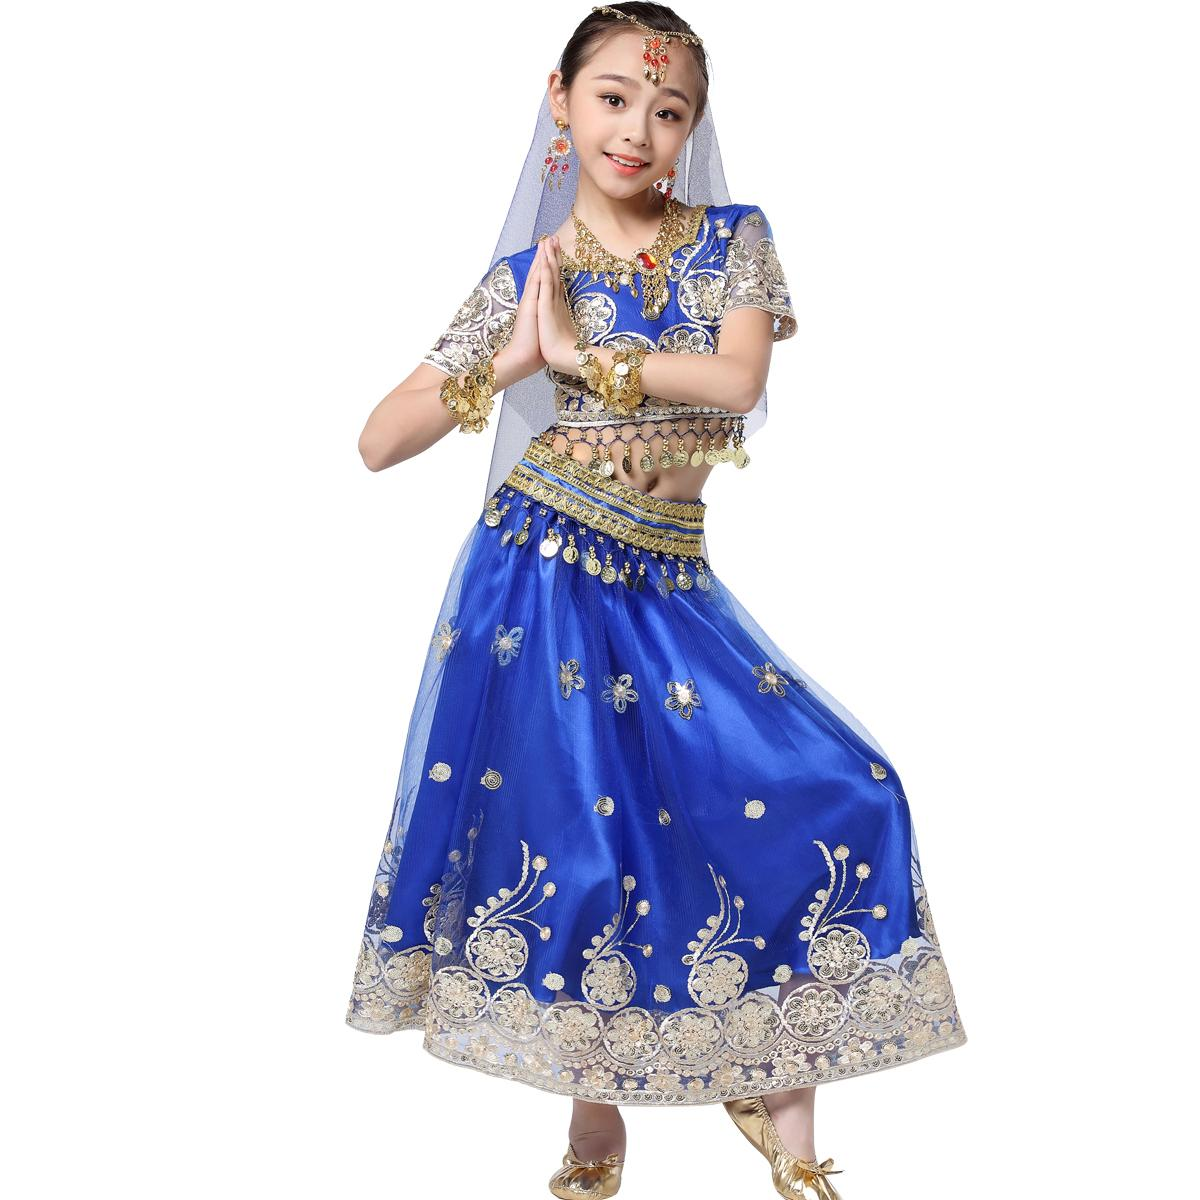 Bollywood Belly Dance Costume - Halloween Costumes Indian Dance Dress Sari Costume Dancewear for Girls (Top+Belt+Skirt+Head Veil+Headpiece)